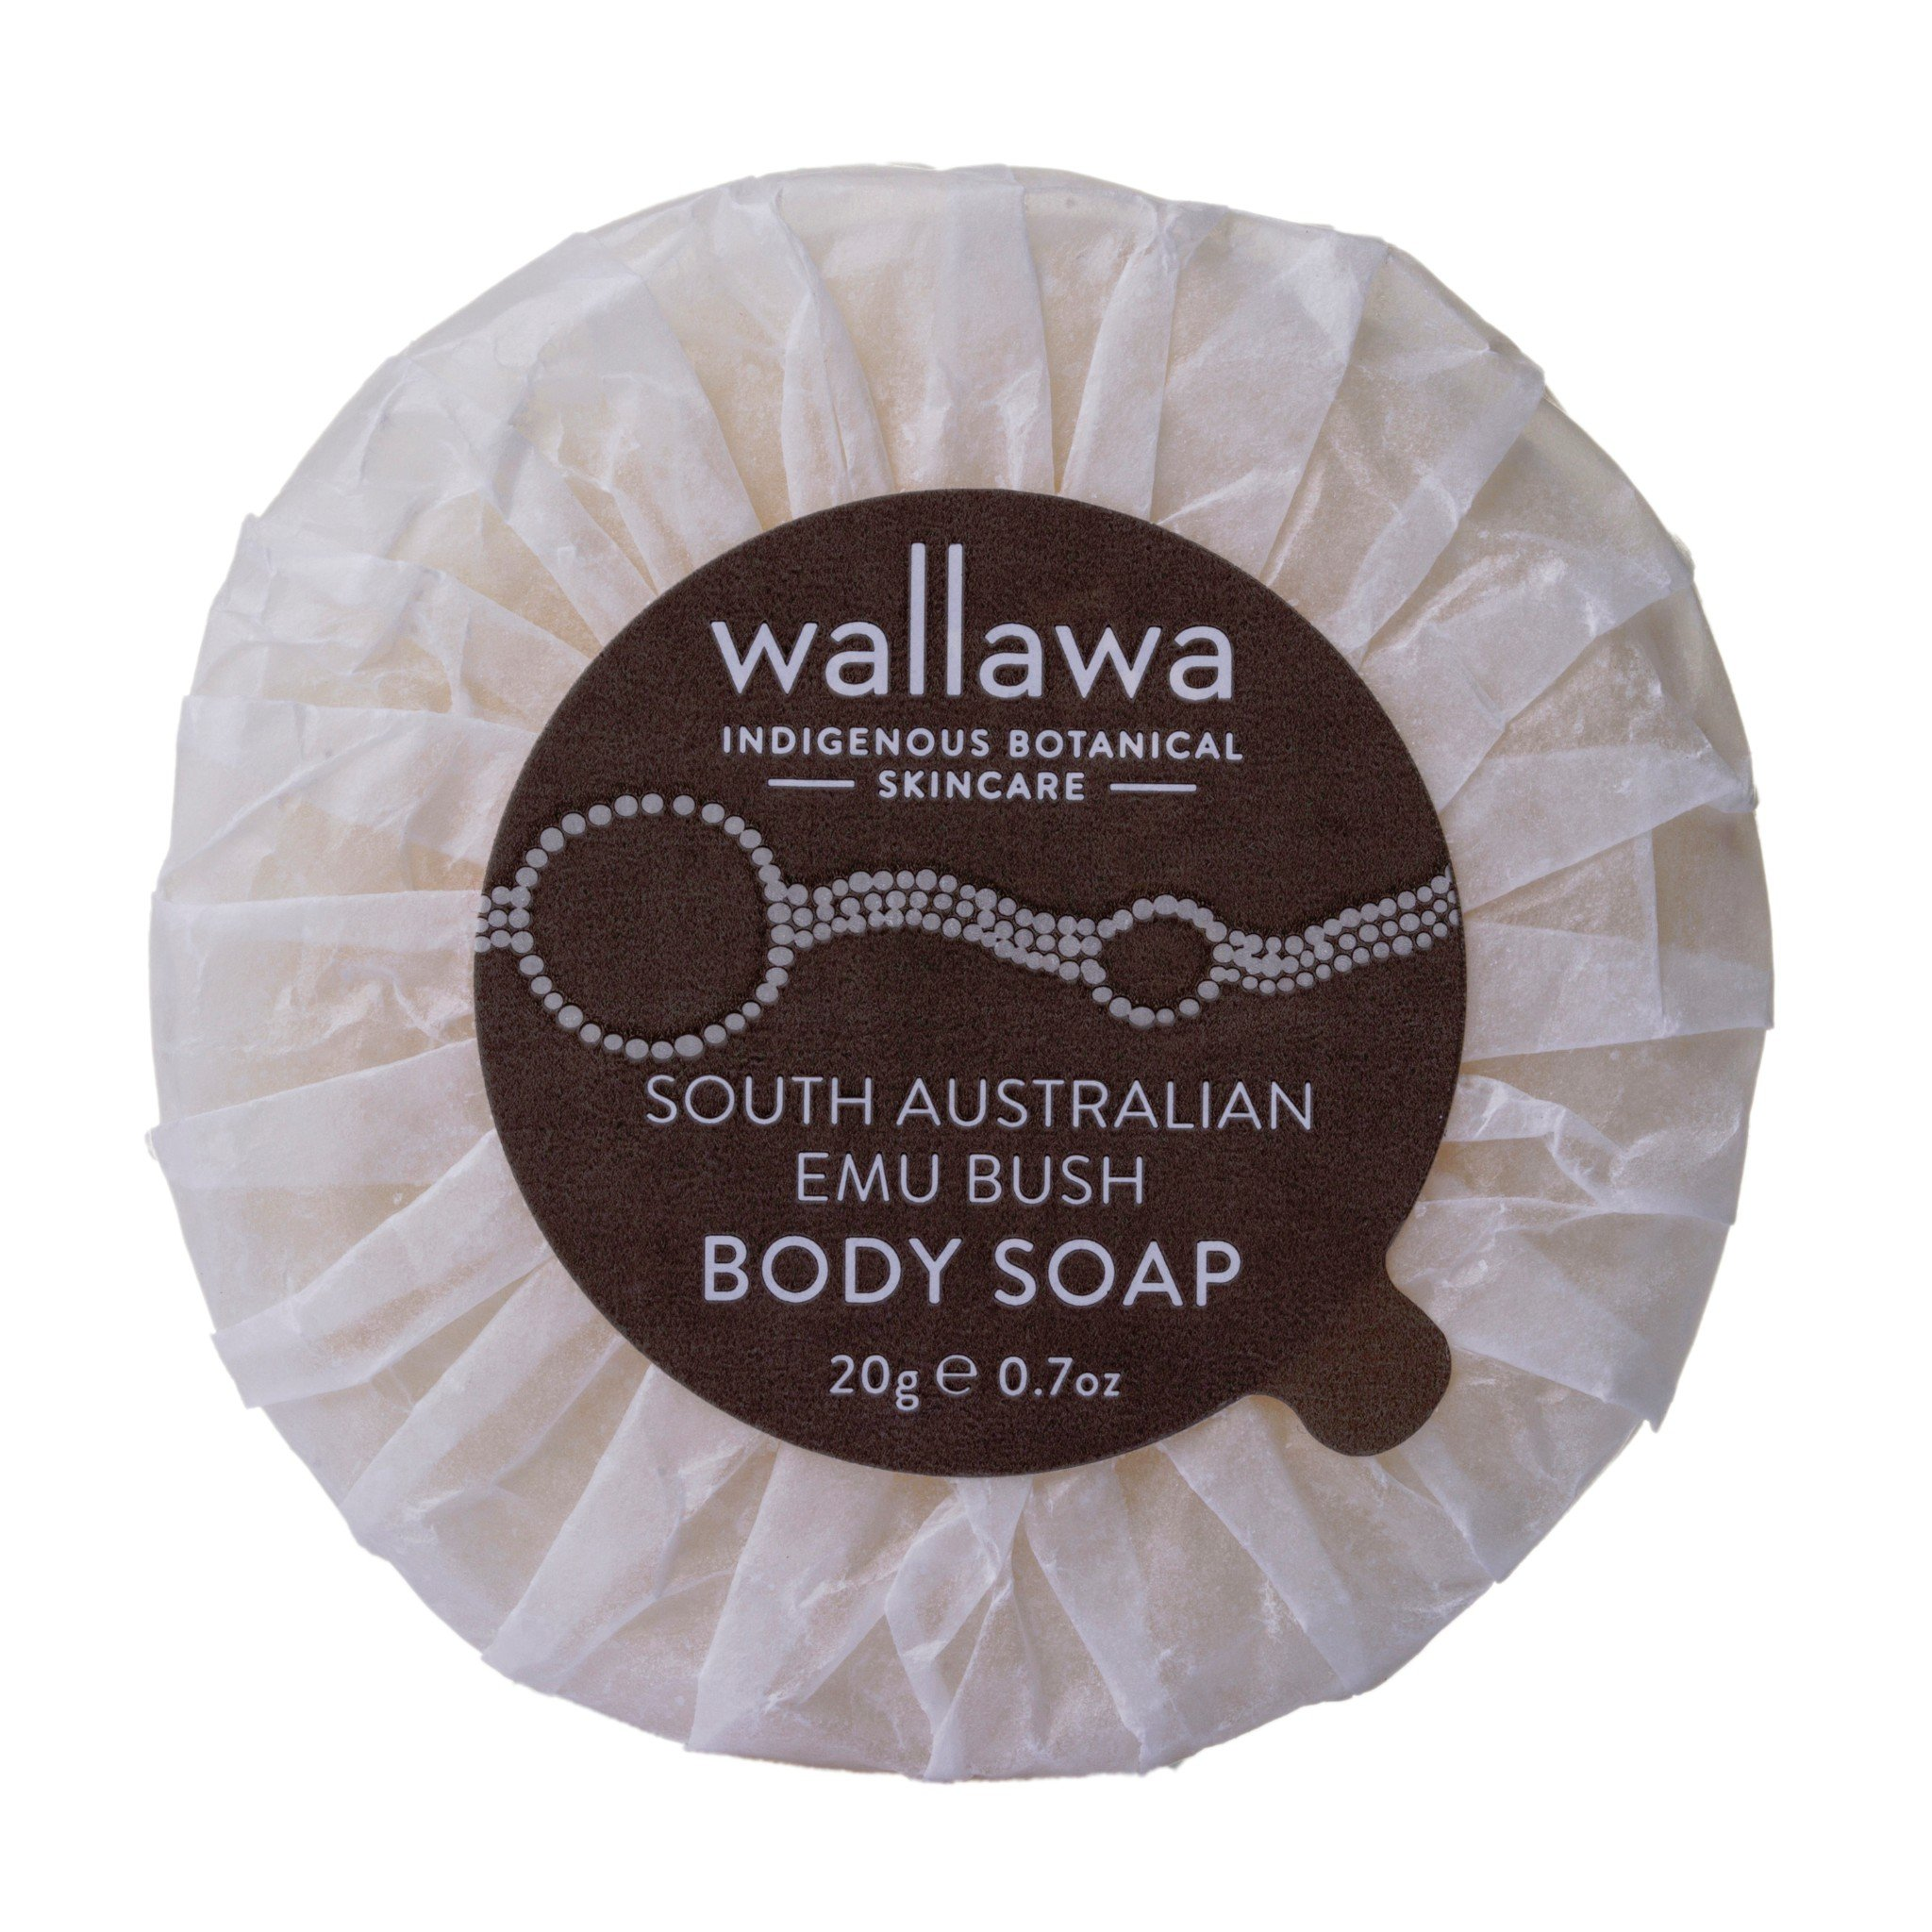 Wallawa 20g Body Soap